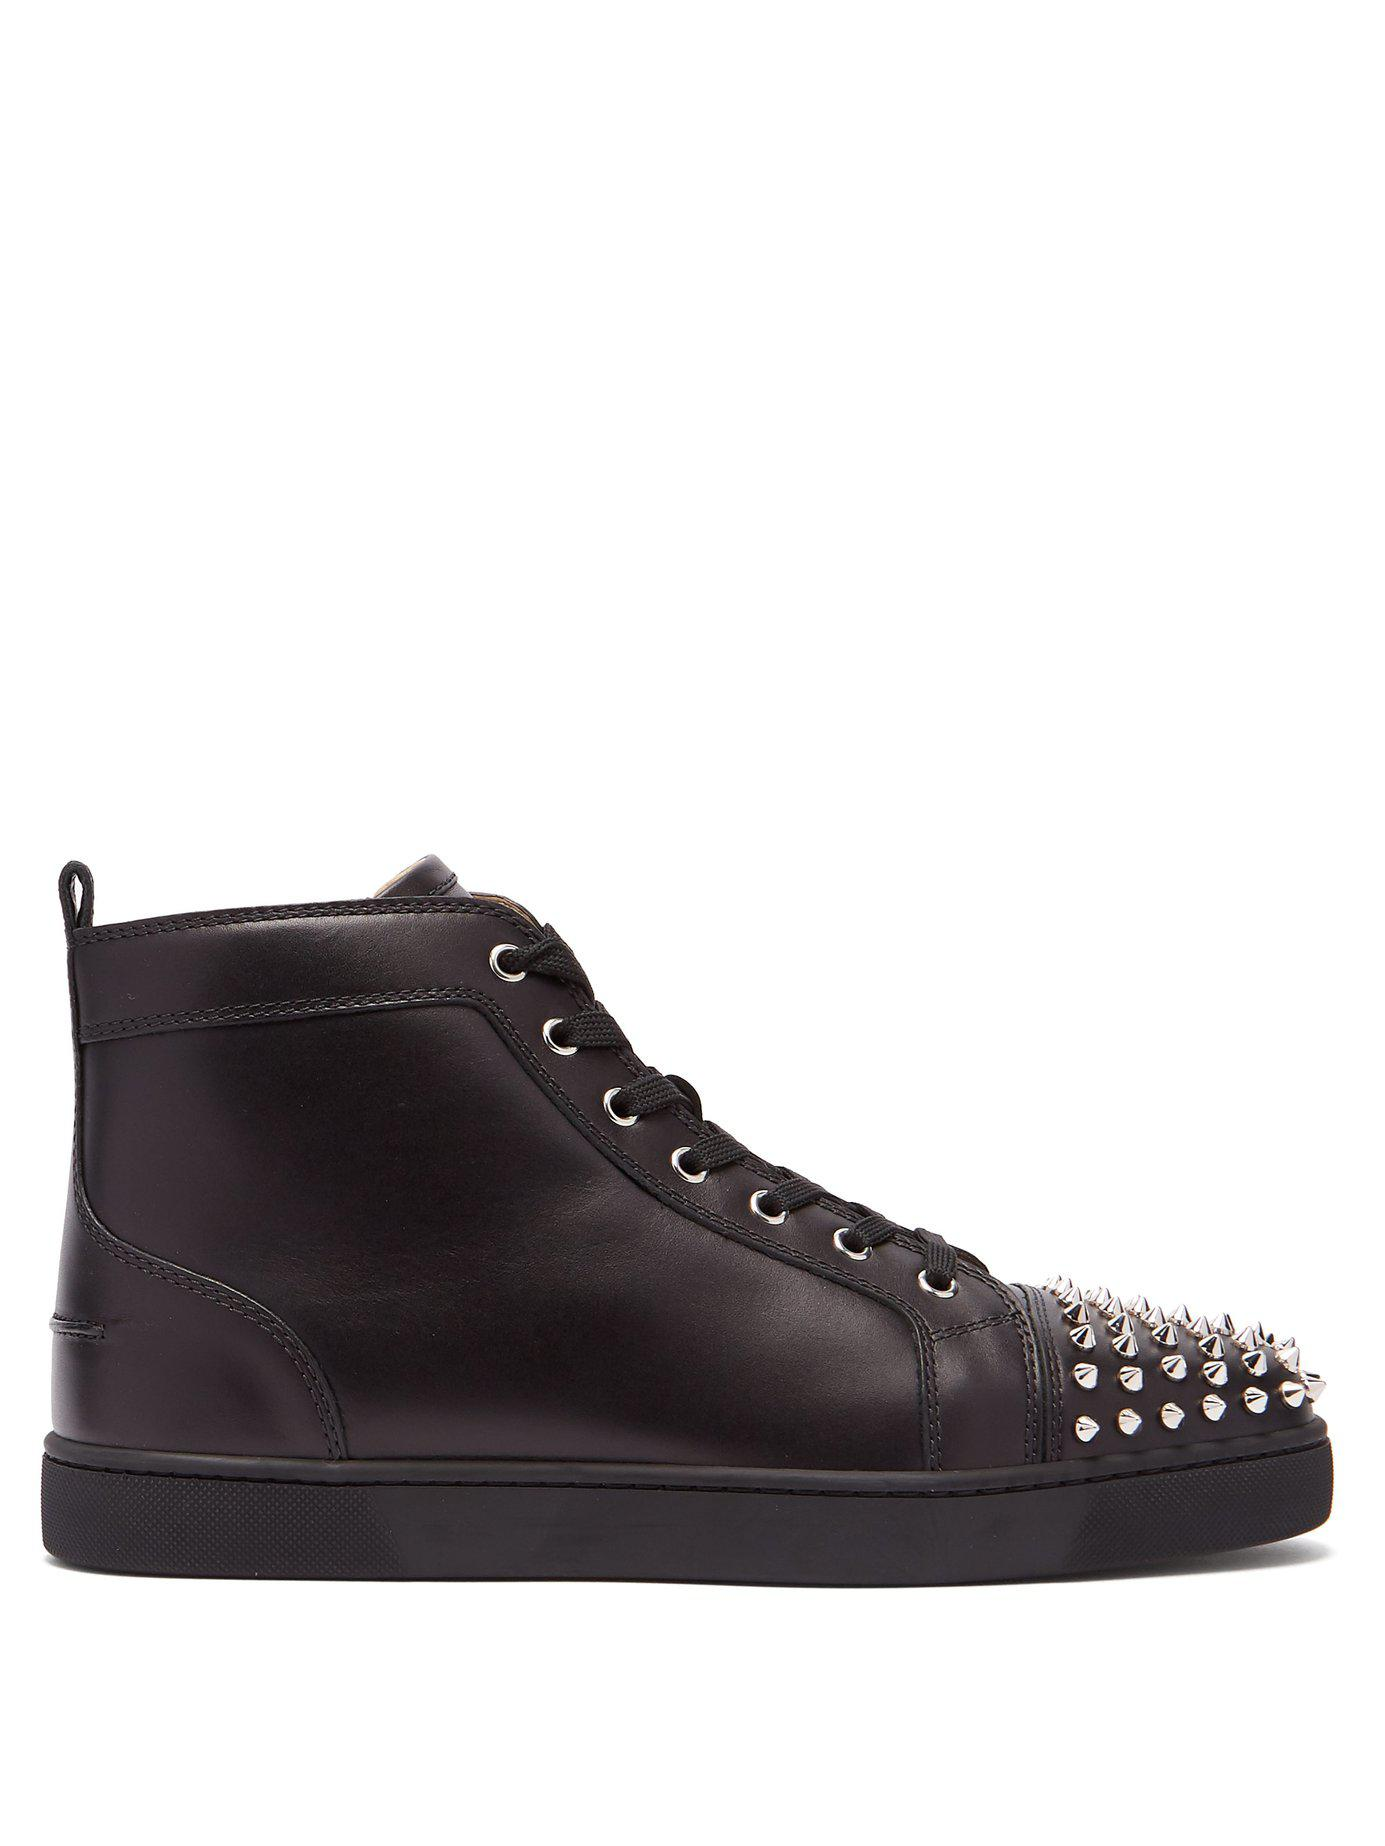 b2a34bf1f9f9 Lyst - Christian Louboutin Louis Spike Embellished High Top Trainers ...